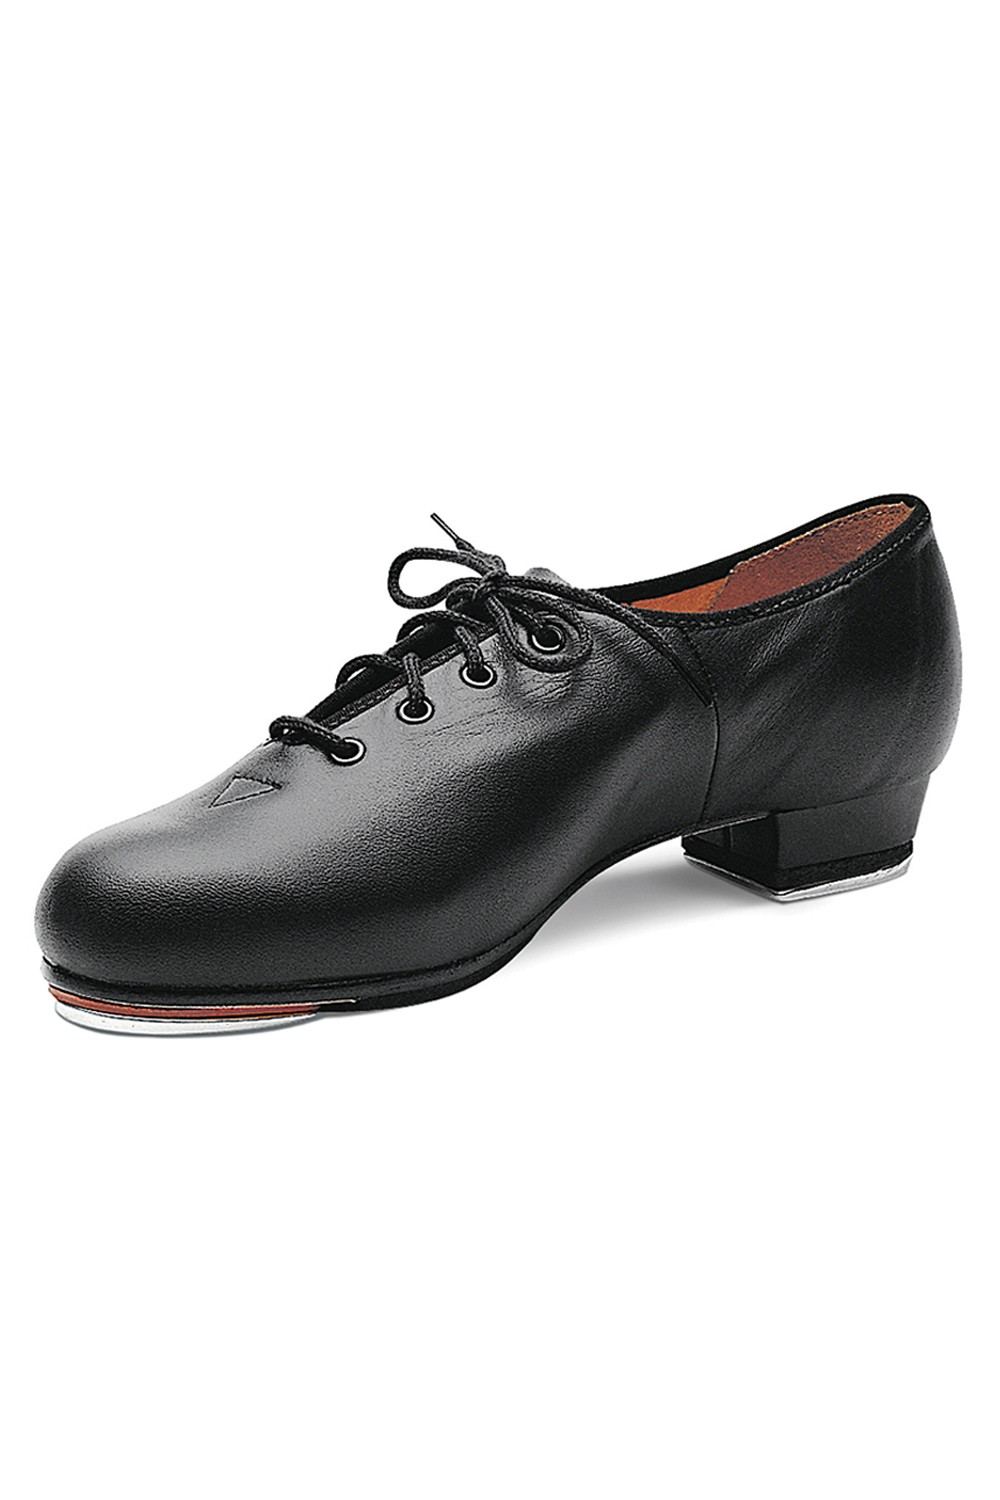 Jazz Steppschuhe - Herren Men's Tap Shoes